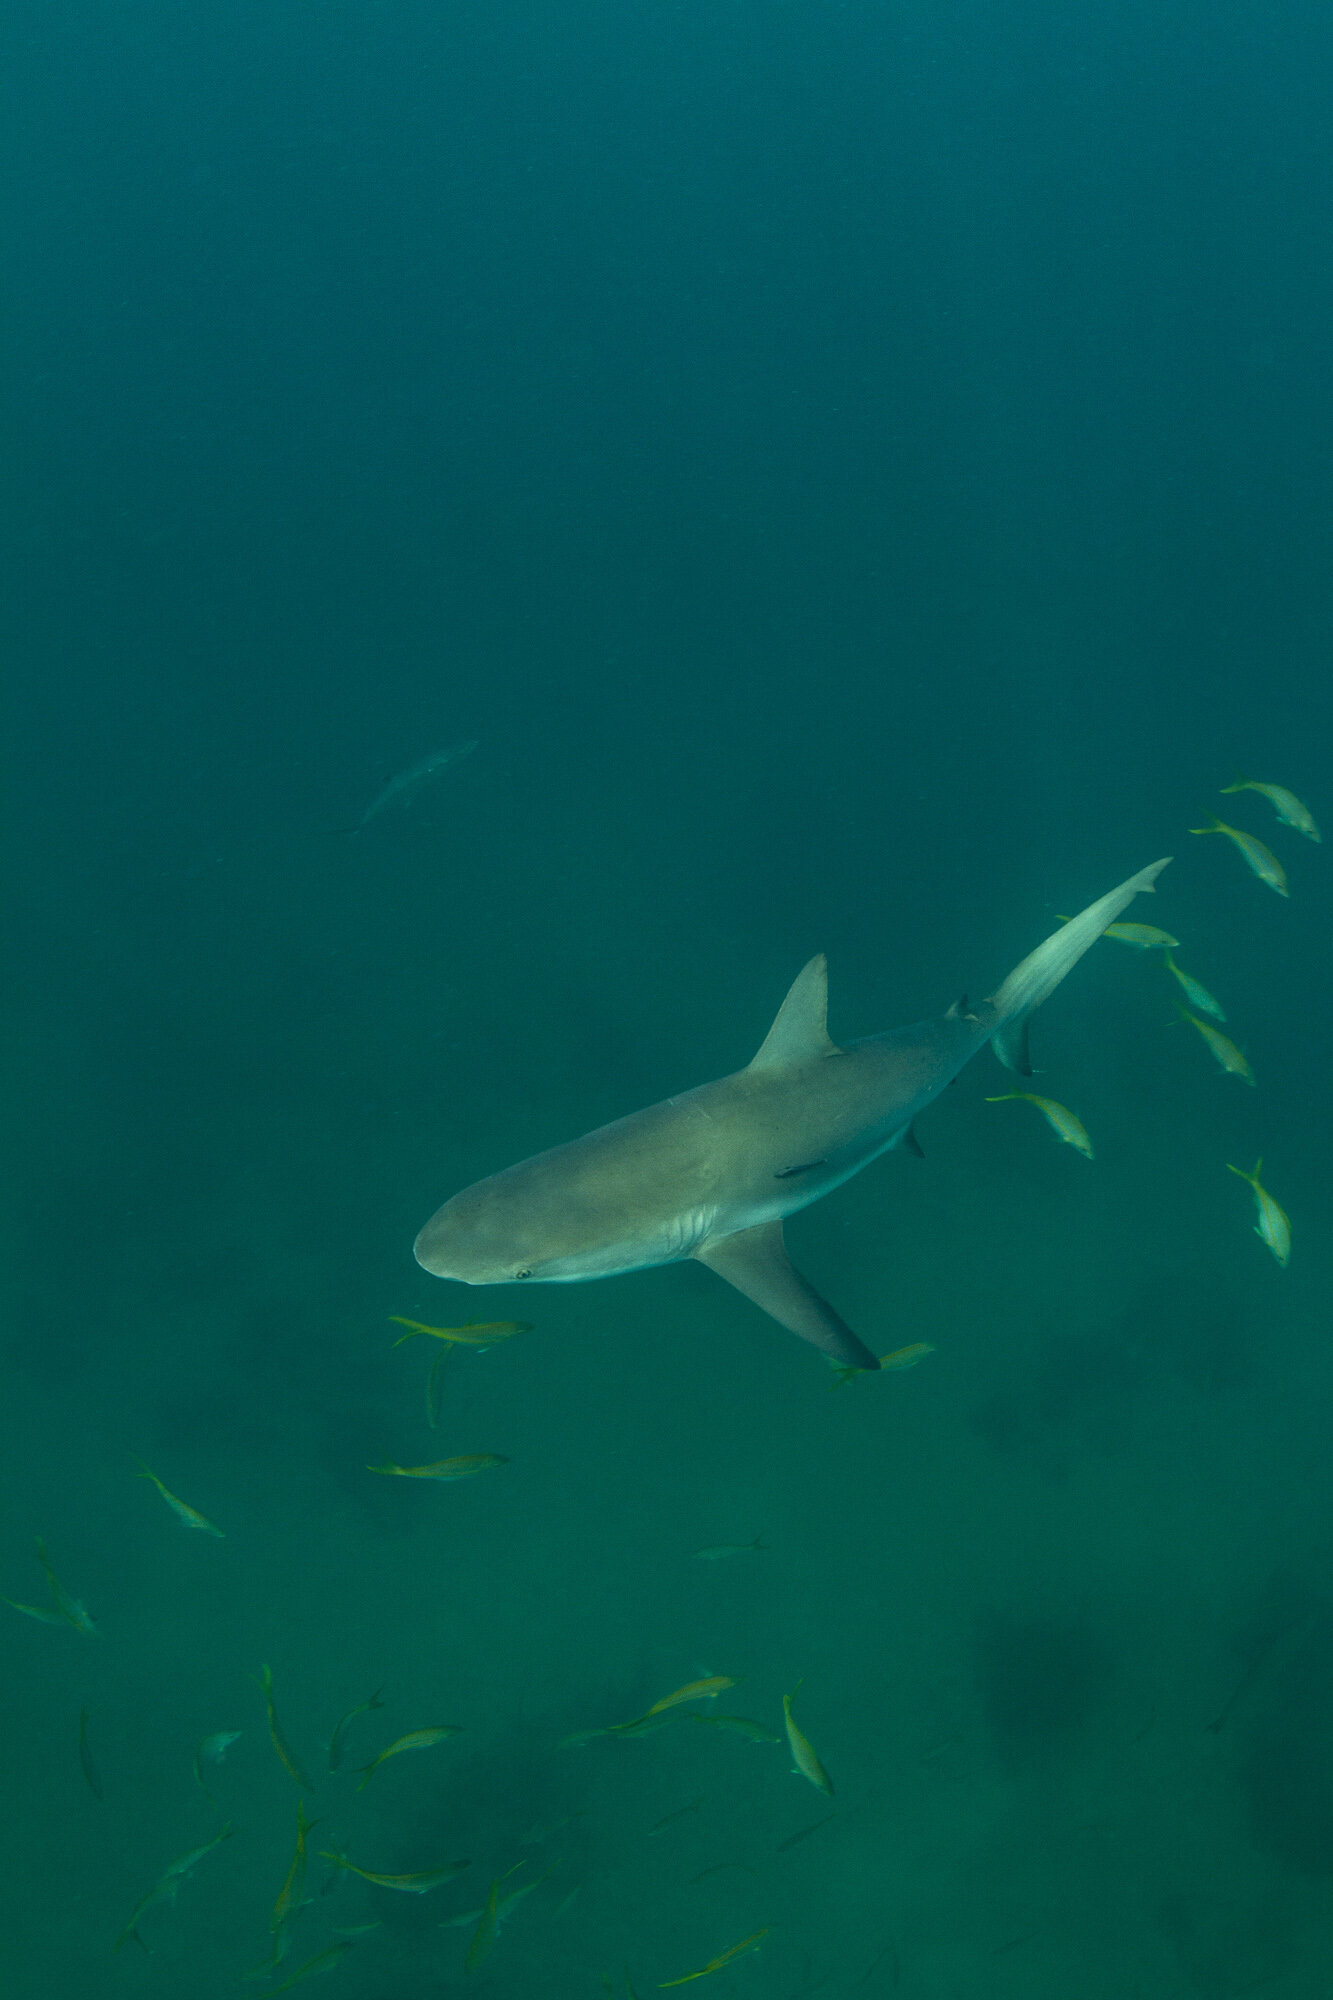 One of at least five sharks present